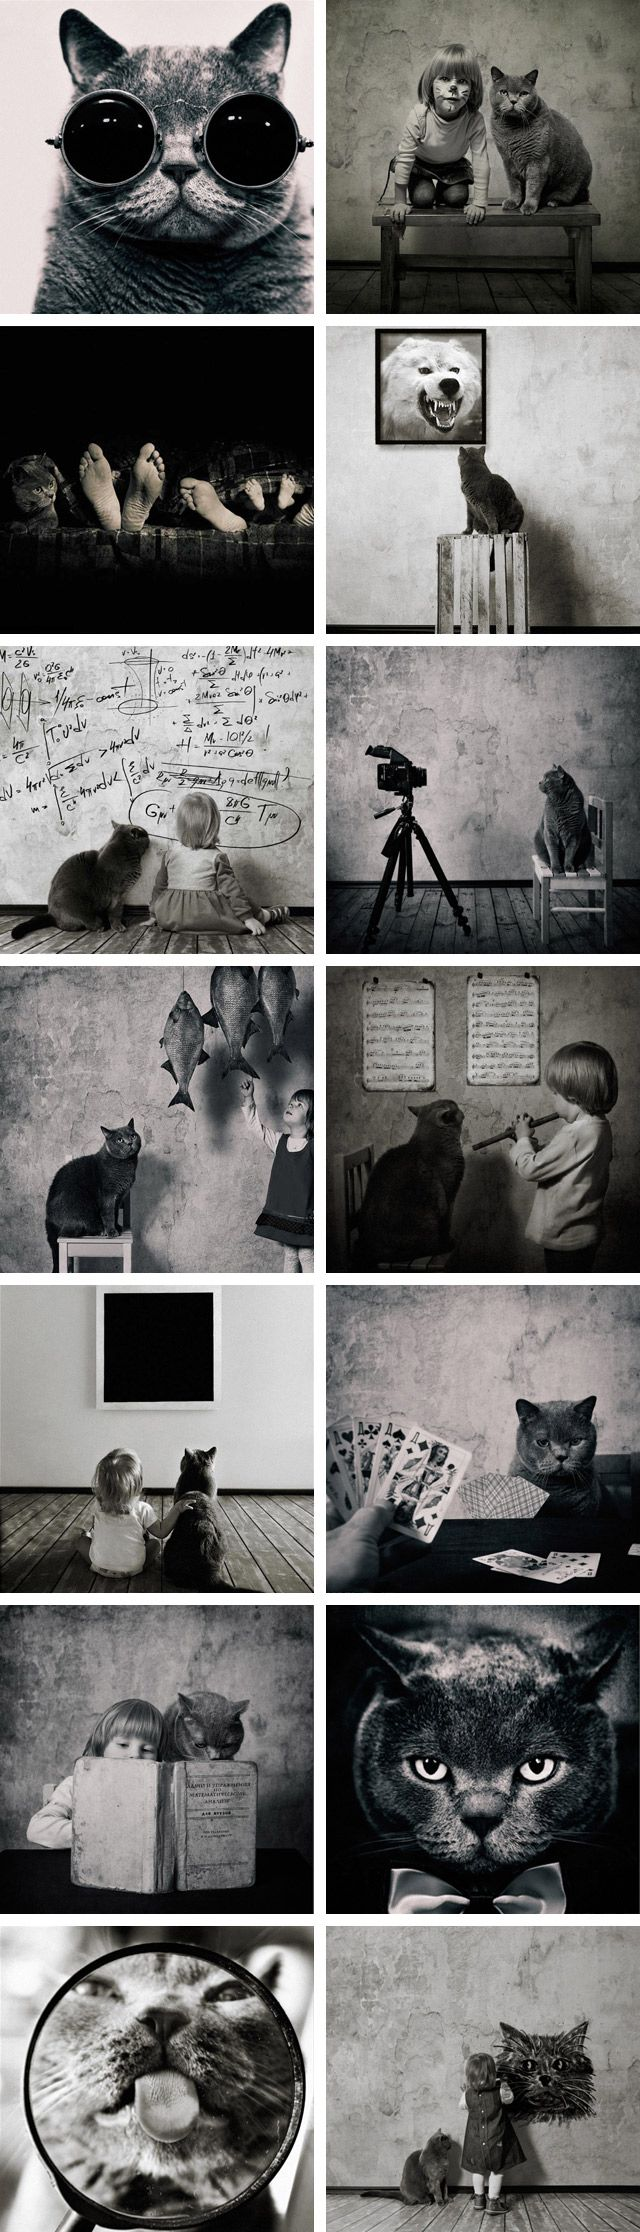 A Girl and her cat ... gorgeous photos by Andy Prokh.